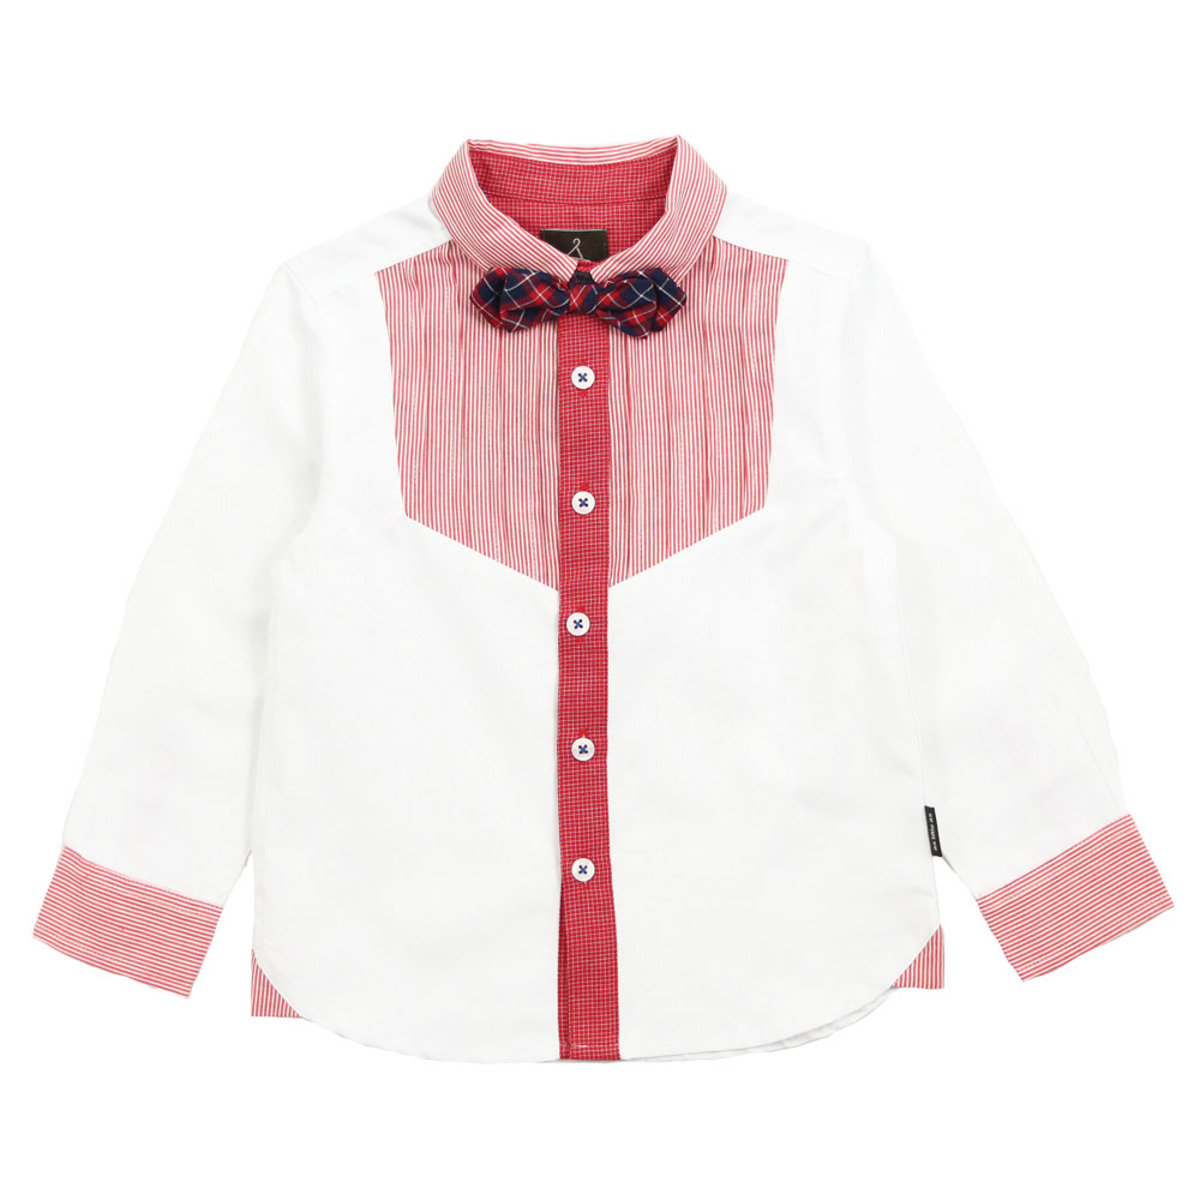 Dress shirt w/ Detachable Bow Tie